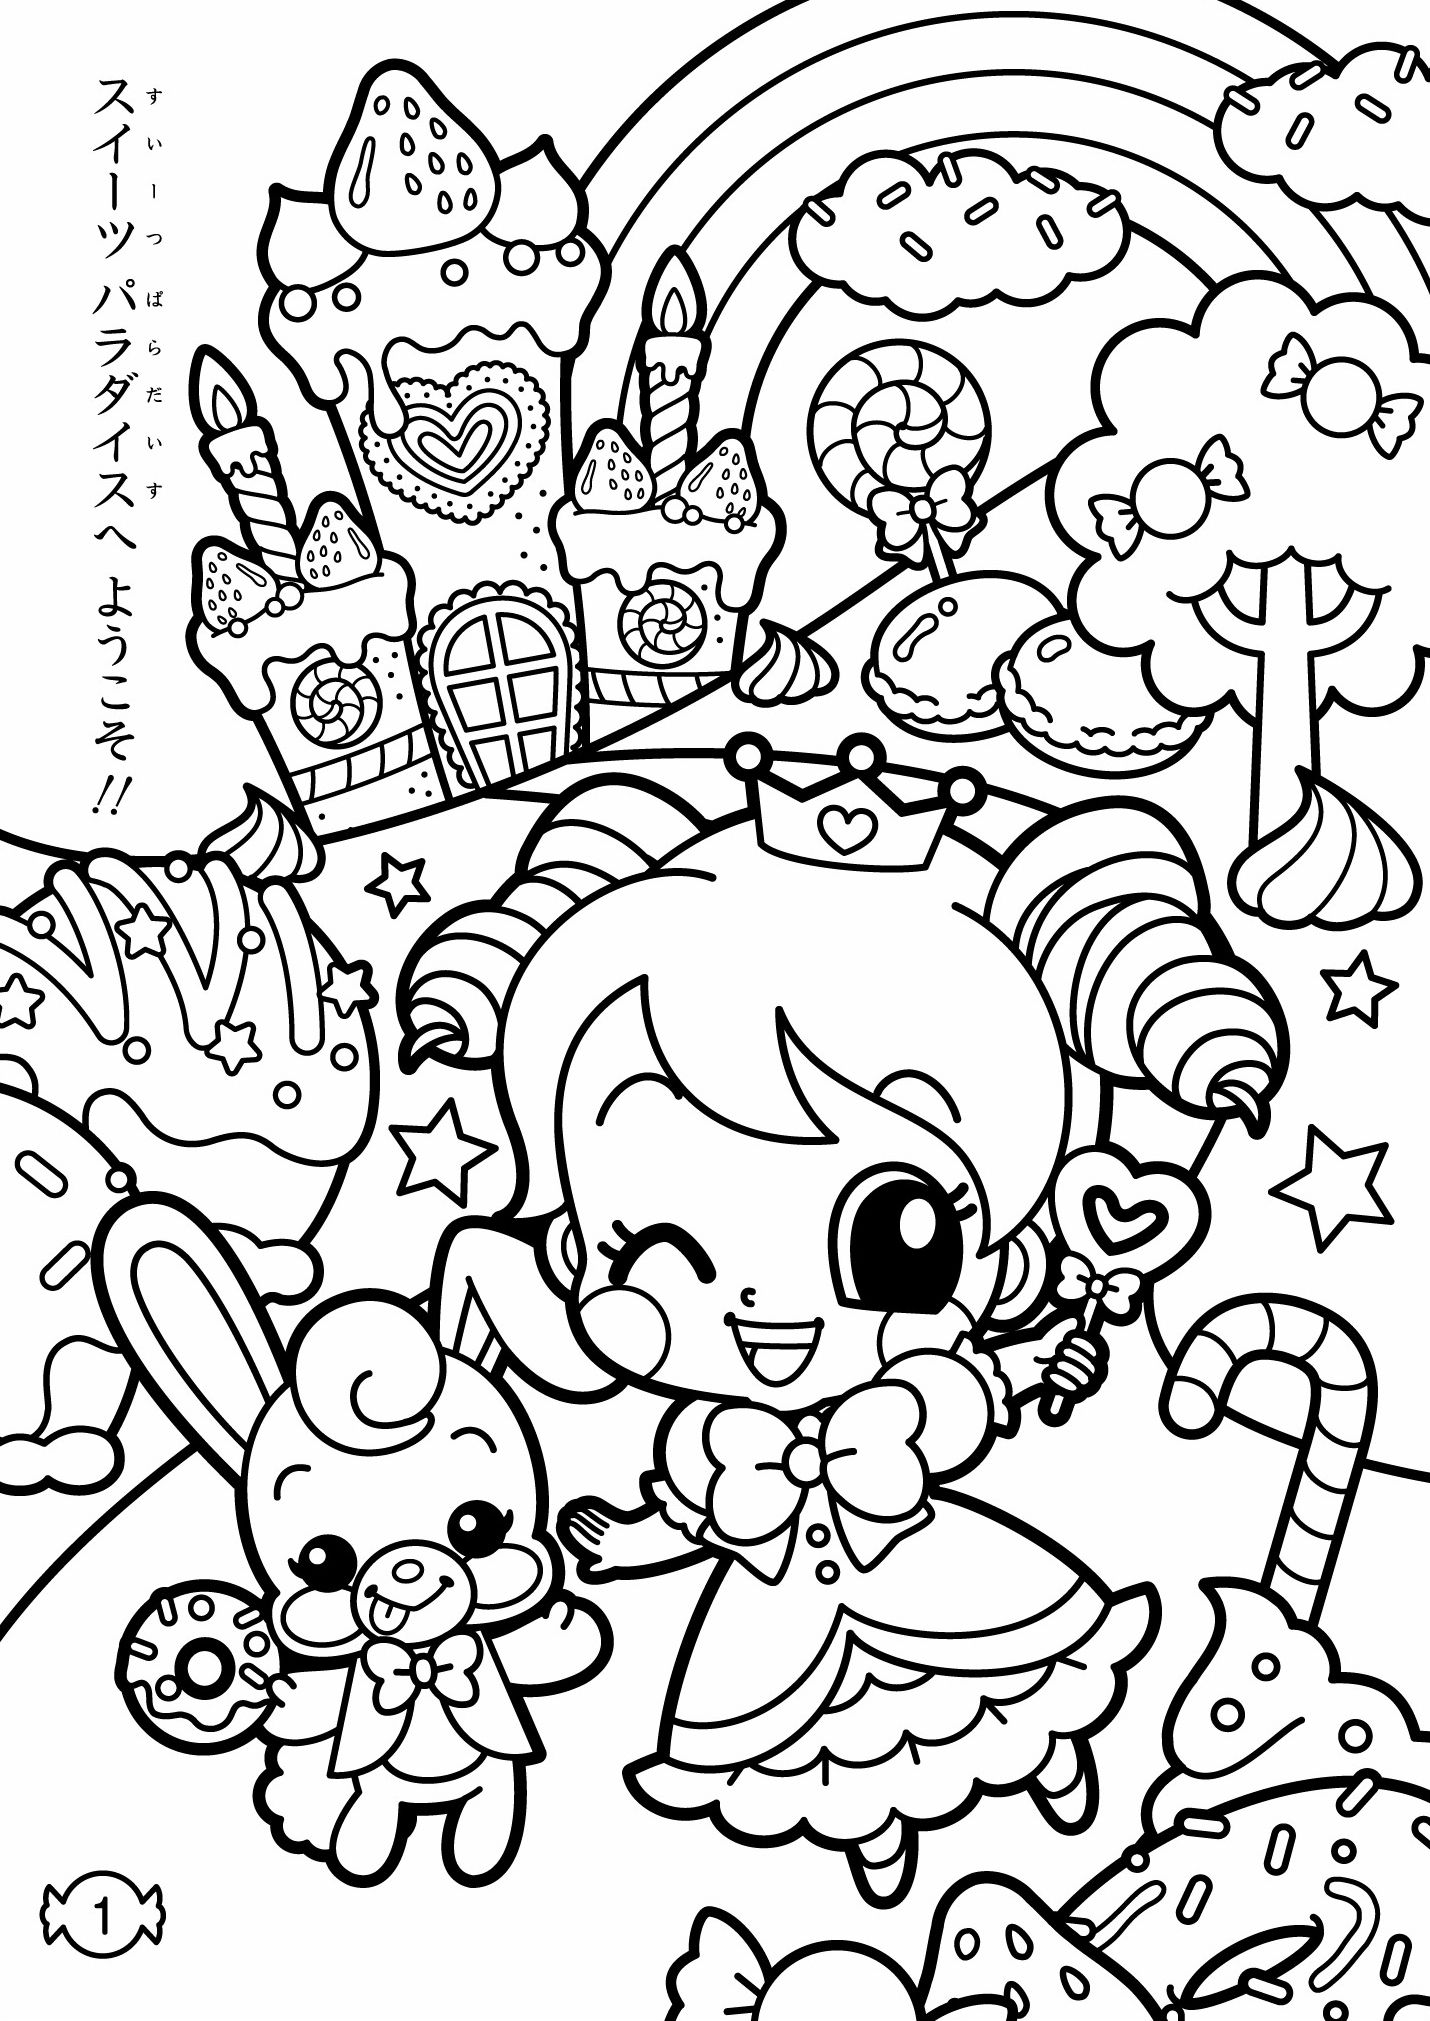 Sweets / Coloring Pages Kawaii | Kawaii | Pinterest | Ausmalbilder ...